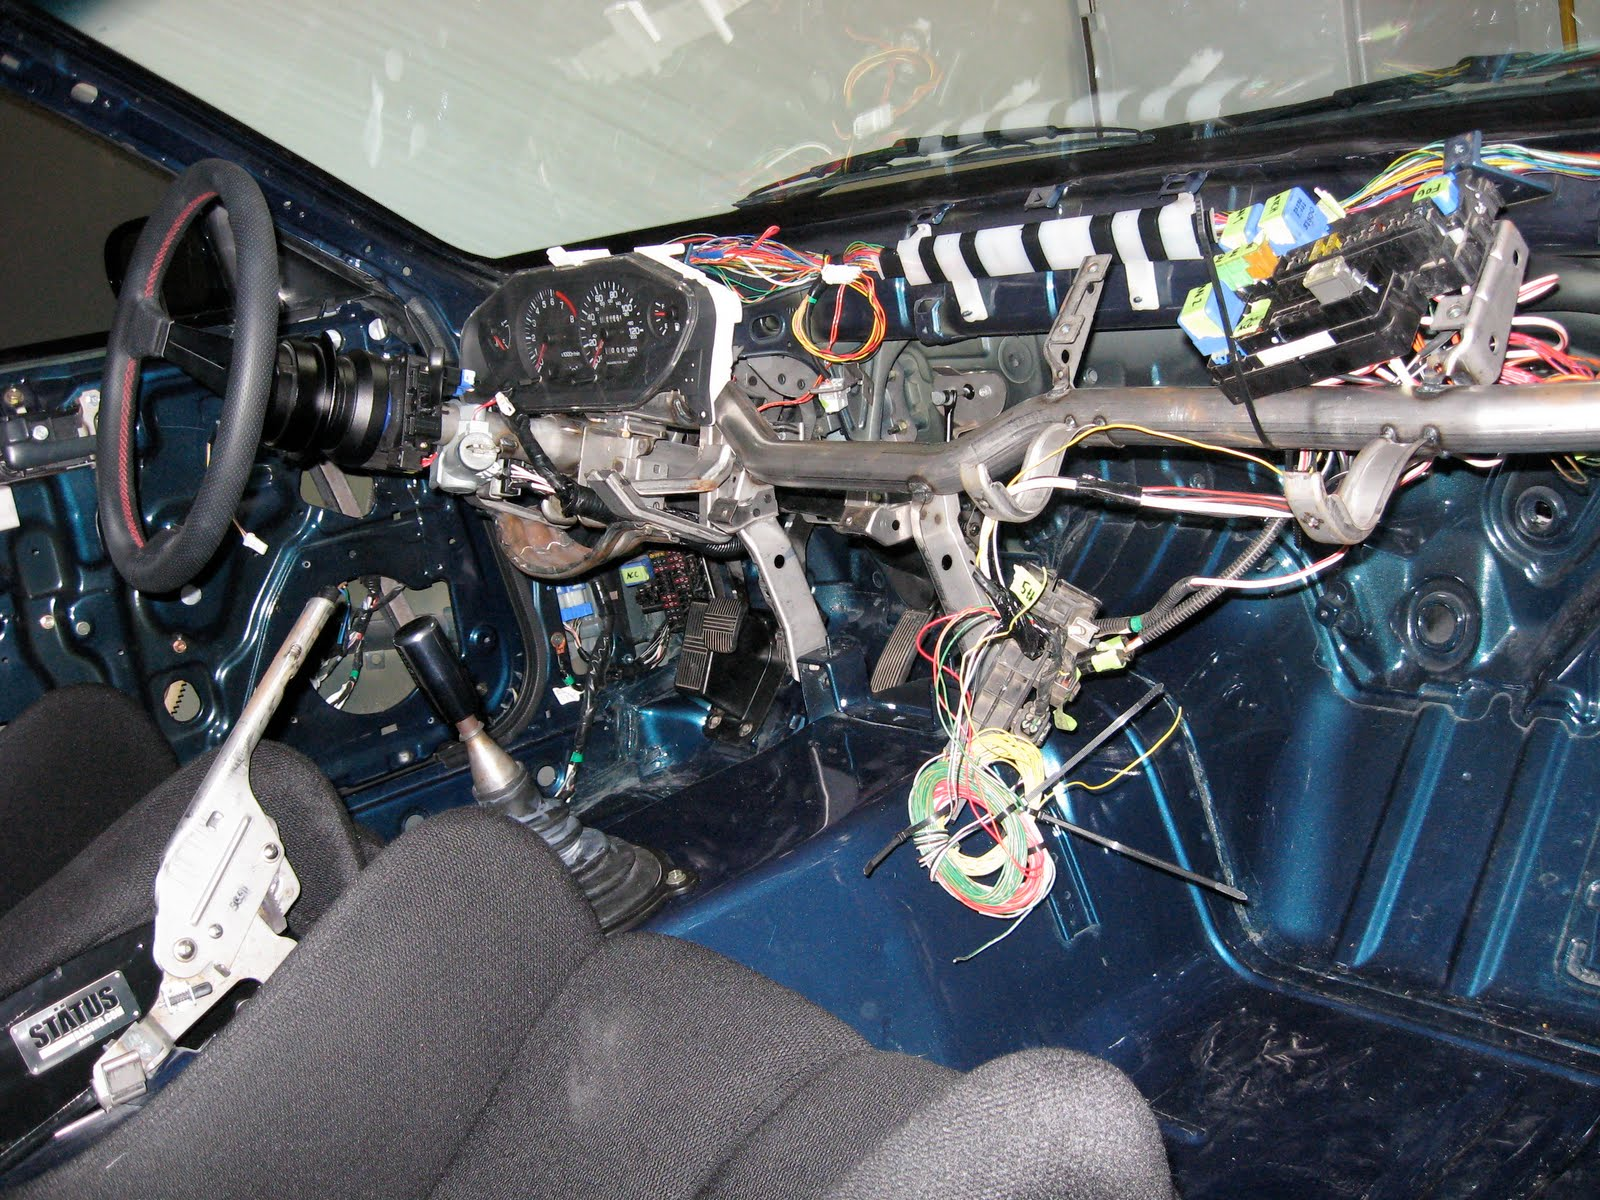 medium resolution of 1995 240sx wiring harness wiring diagram fascinating 240sx body harness wiring diagram 1995 240sx wiring harness